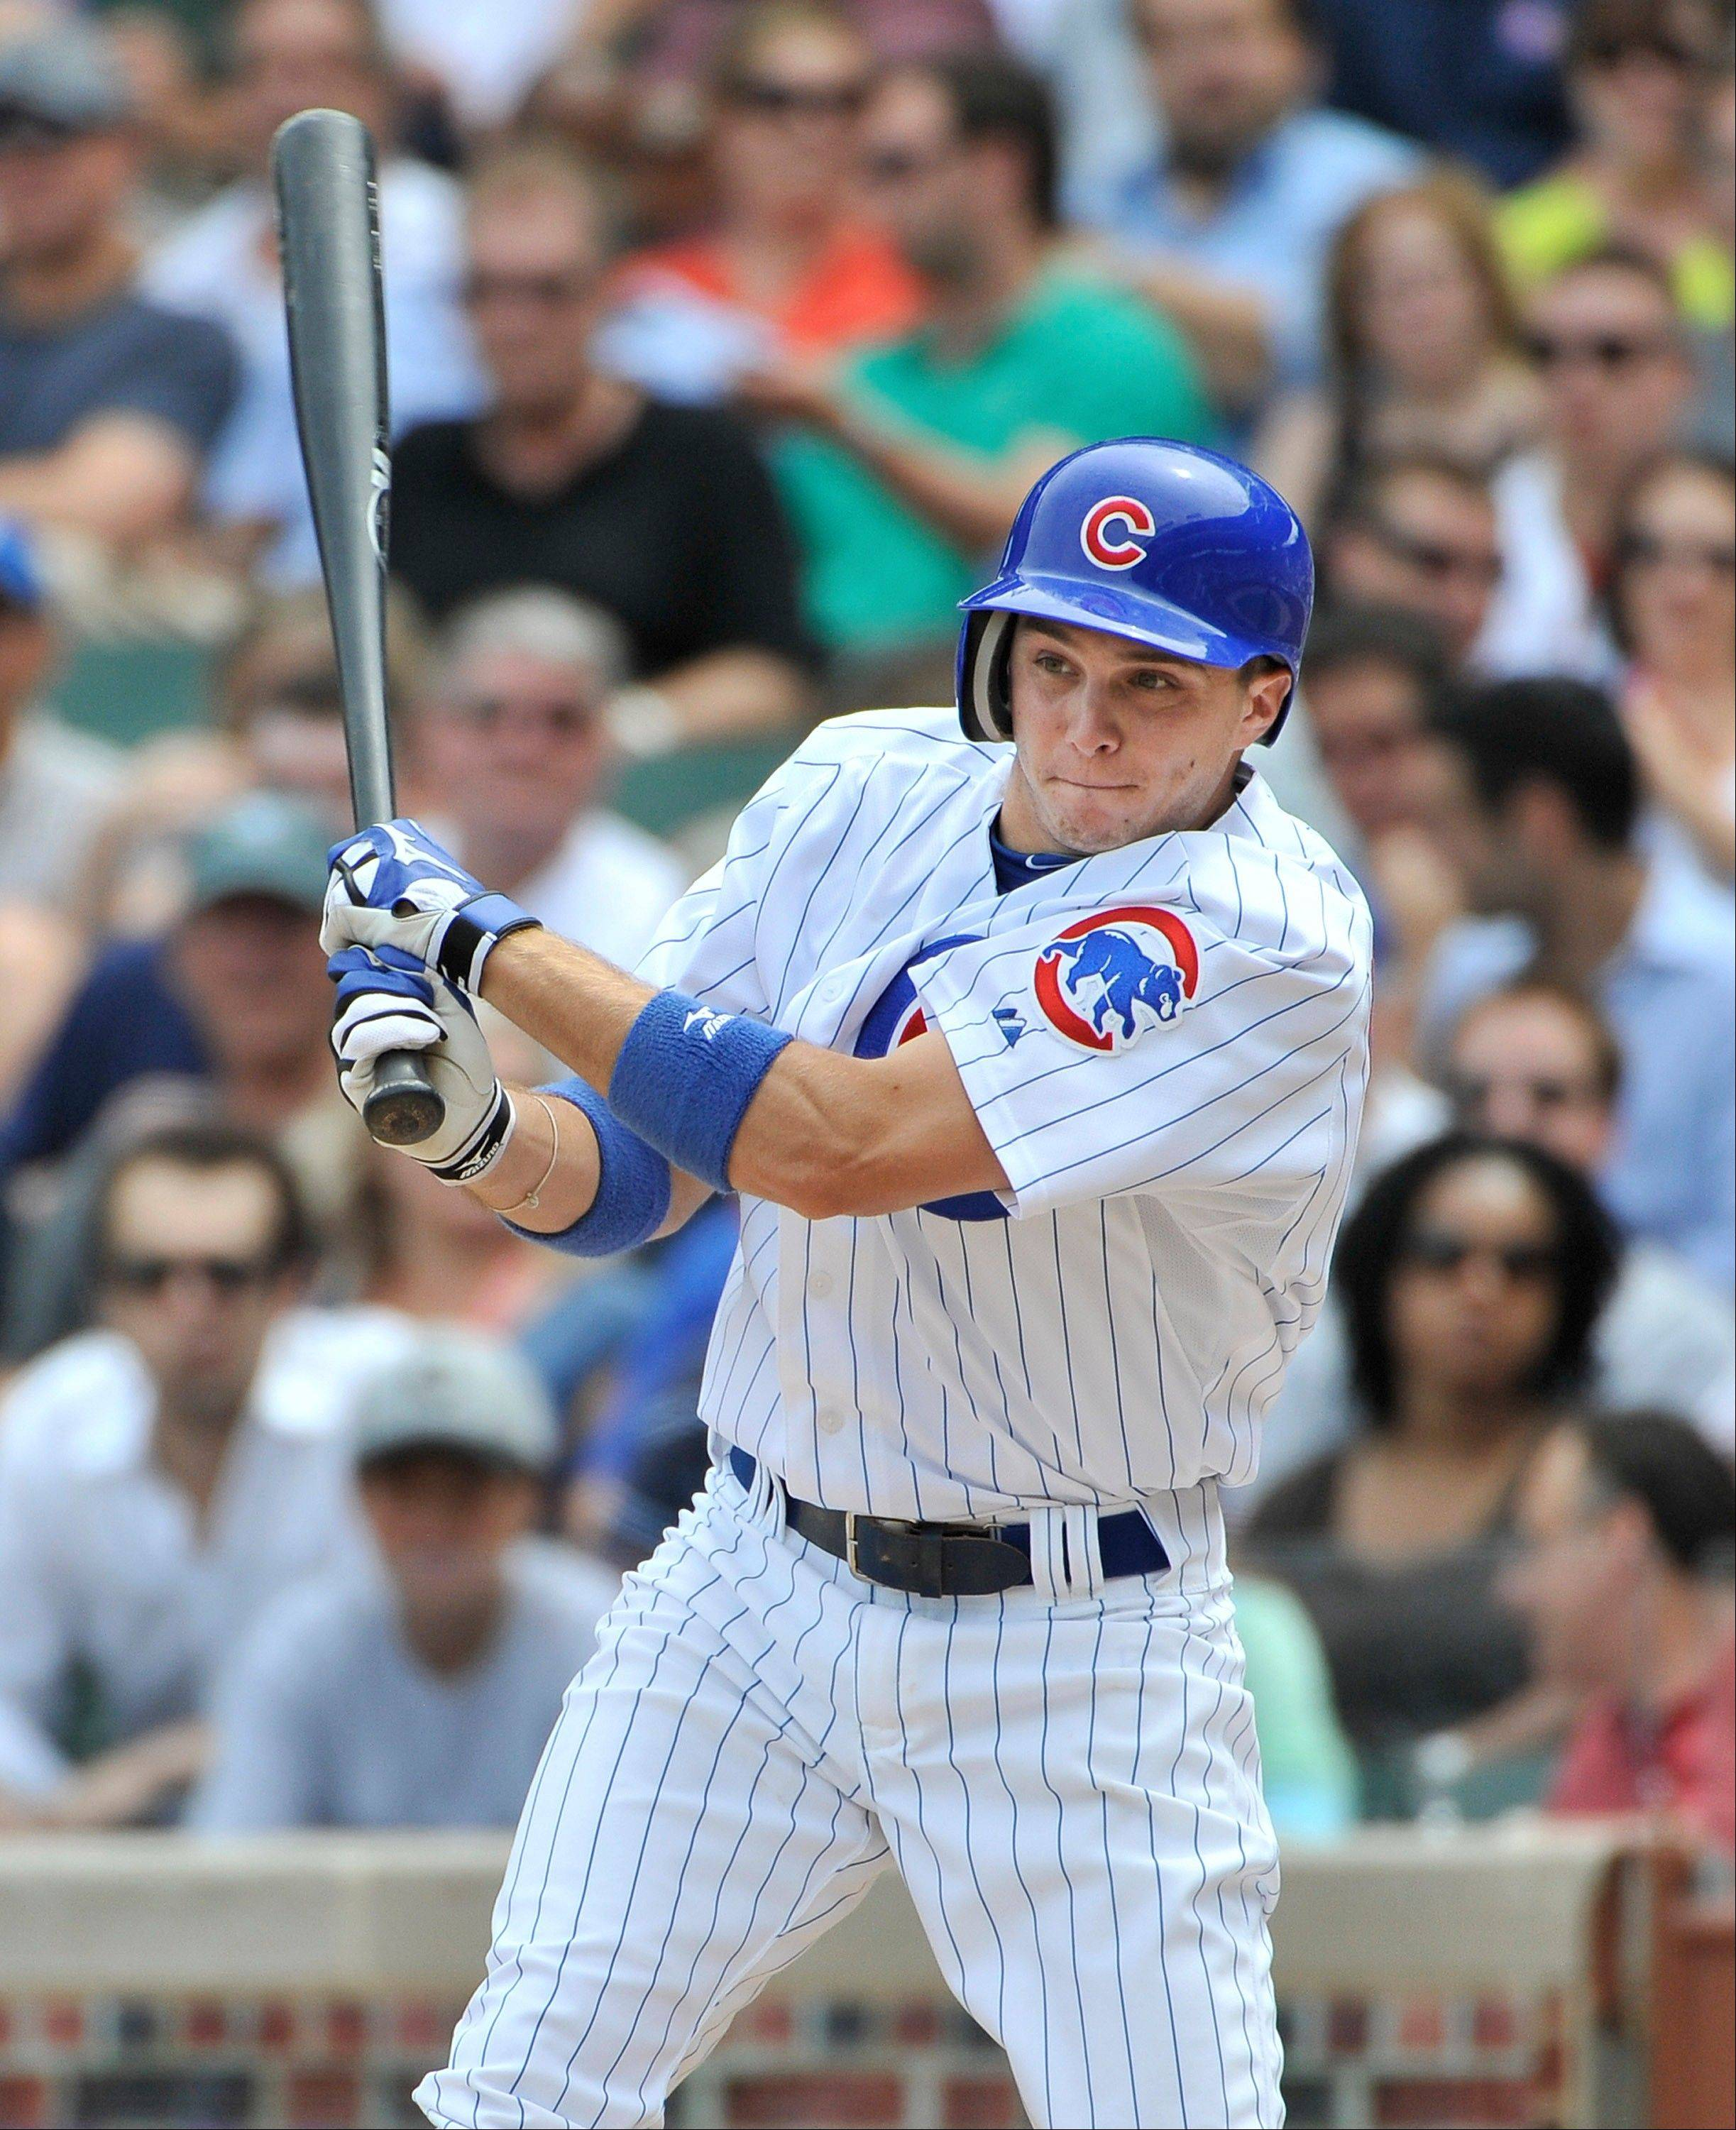 Tony Campana follows through on what turned into a 2-run inside-the-park home run during the first inning of the Cubs� 4-3 victory over Cincinnati at Wrigley Field on Friday.